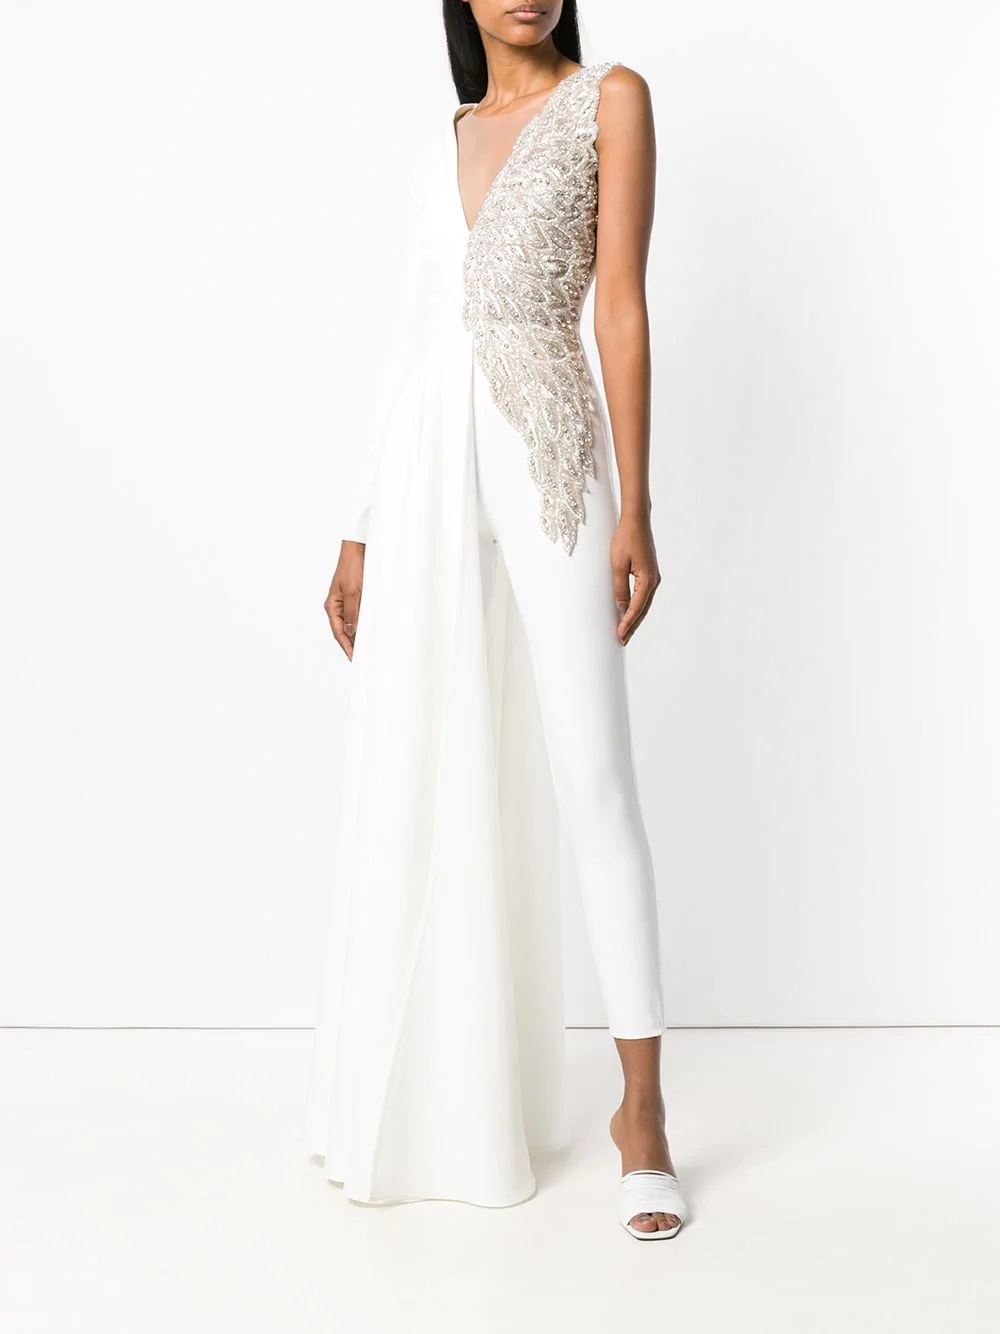 9 chic wedding jumpsuits that will make you rethink your